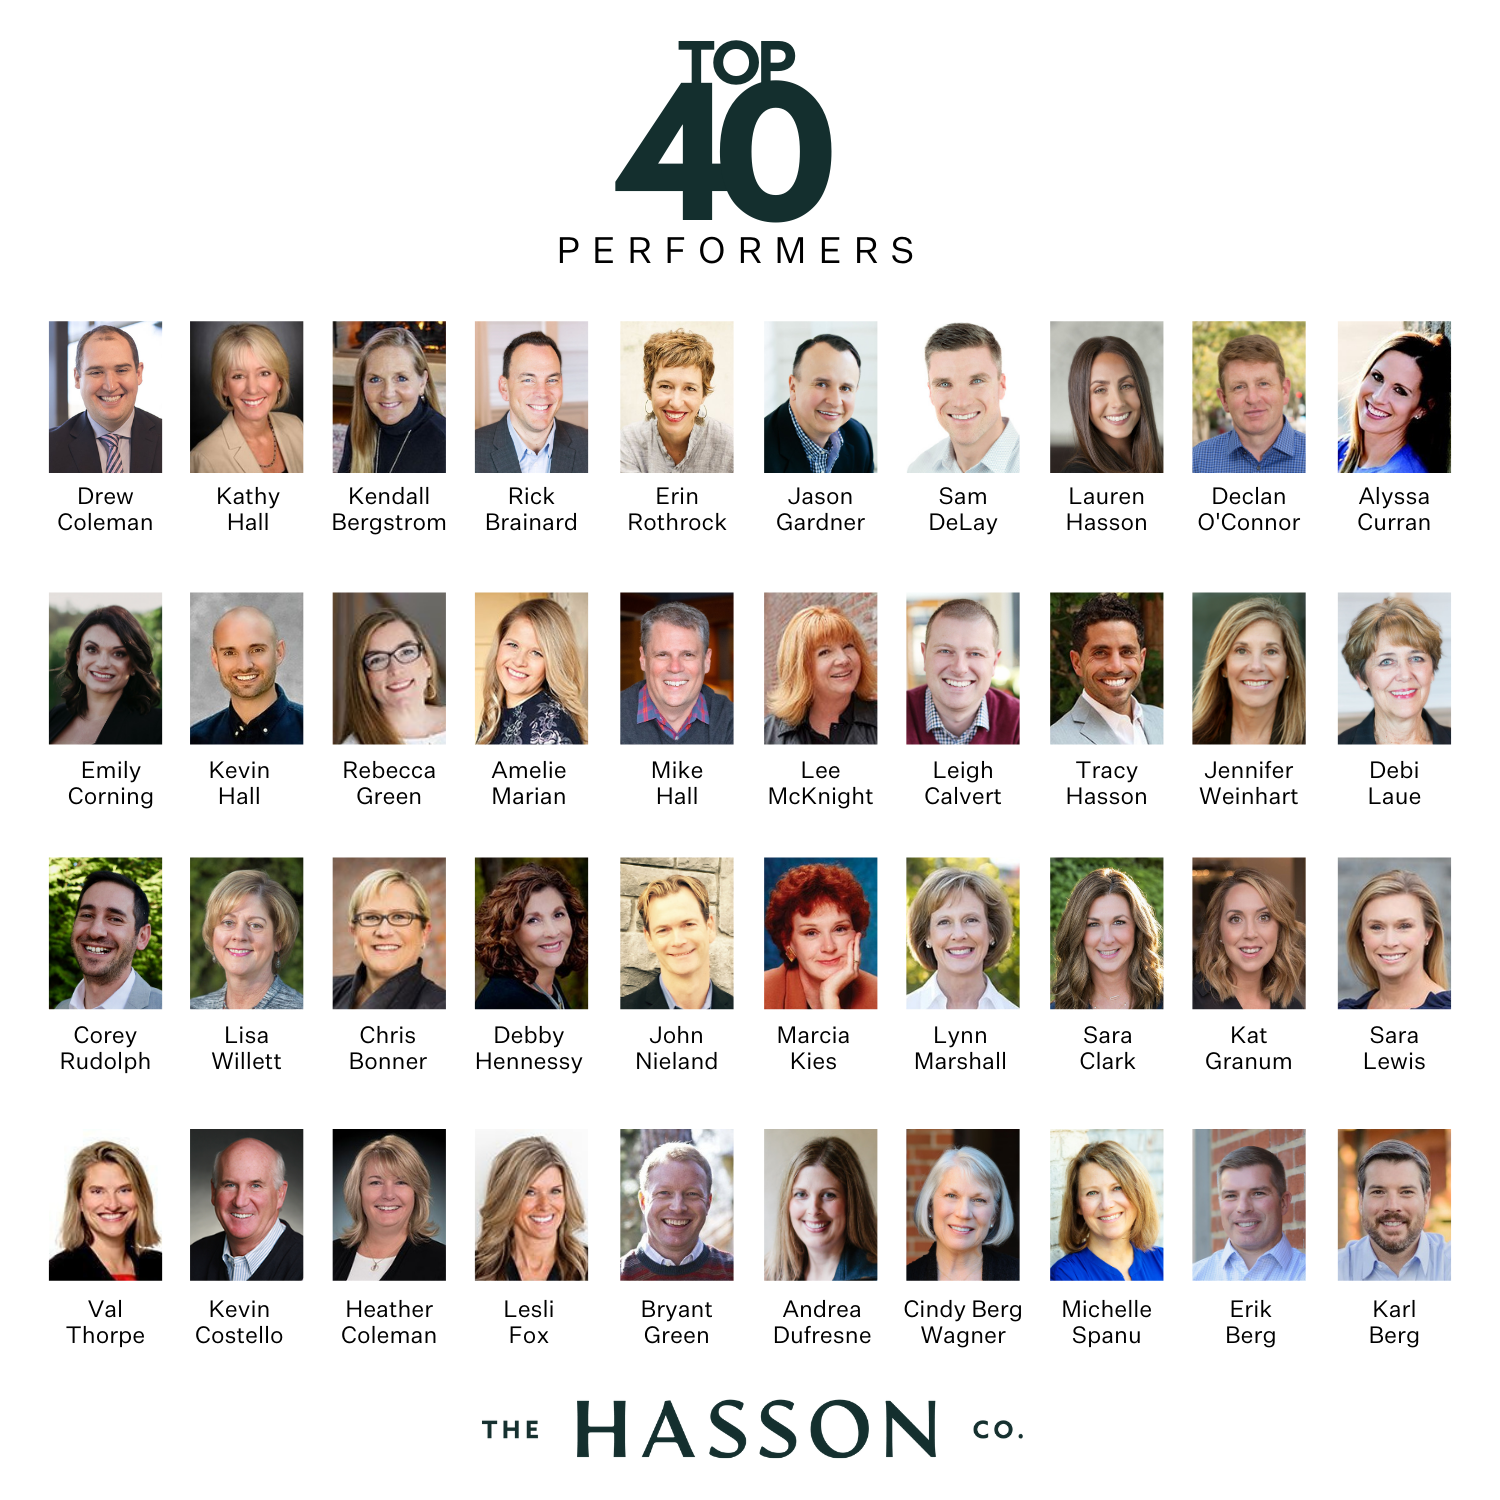 The Hasson Company Top 40 Performers 2020